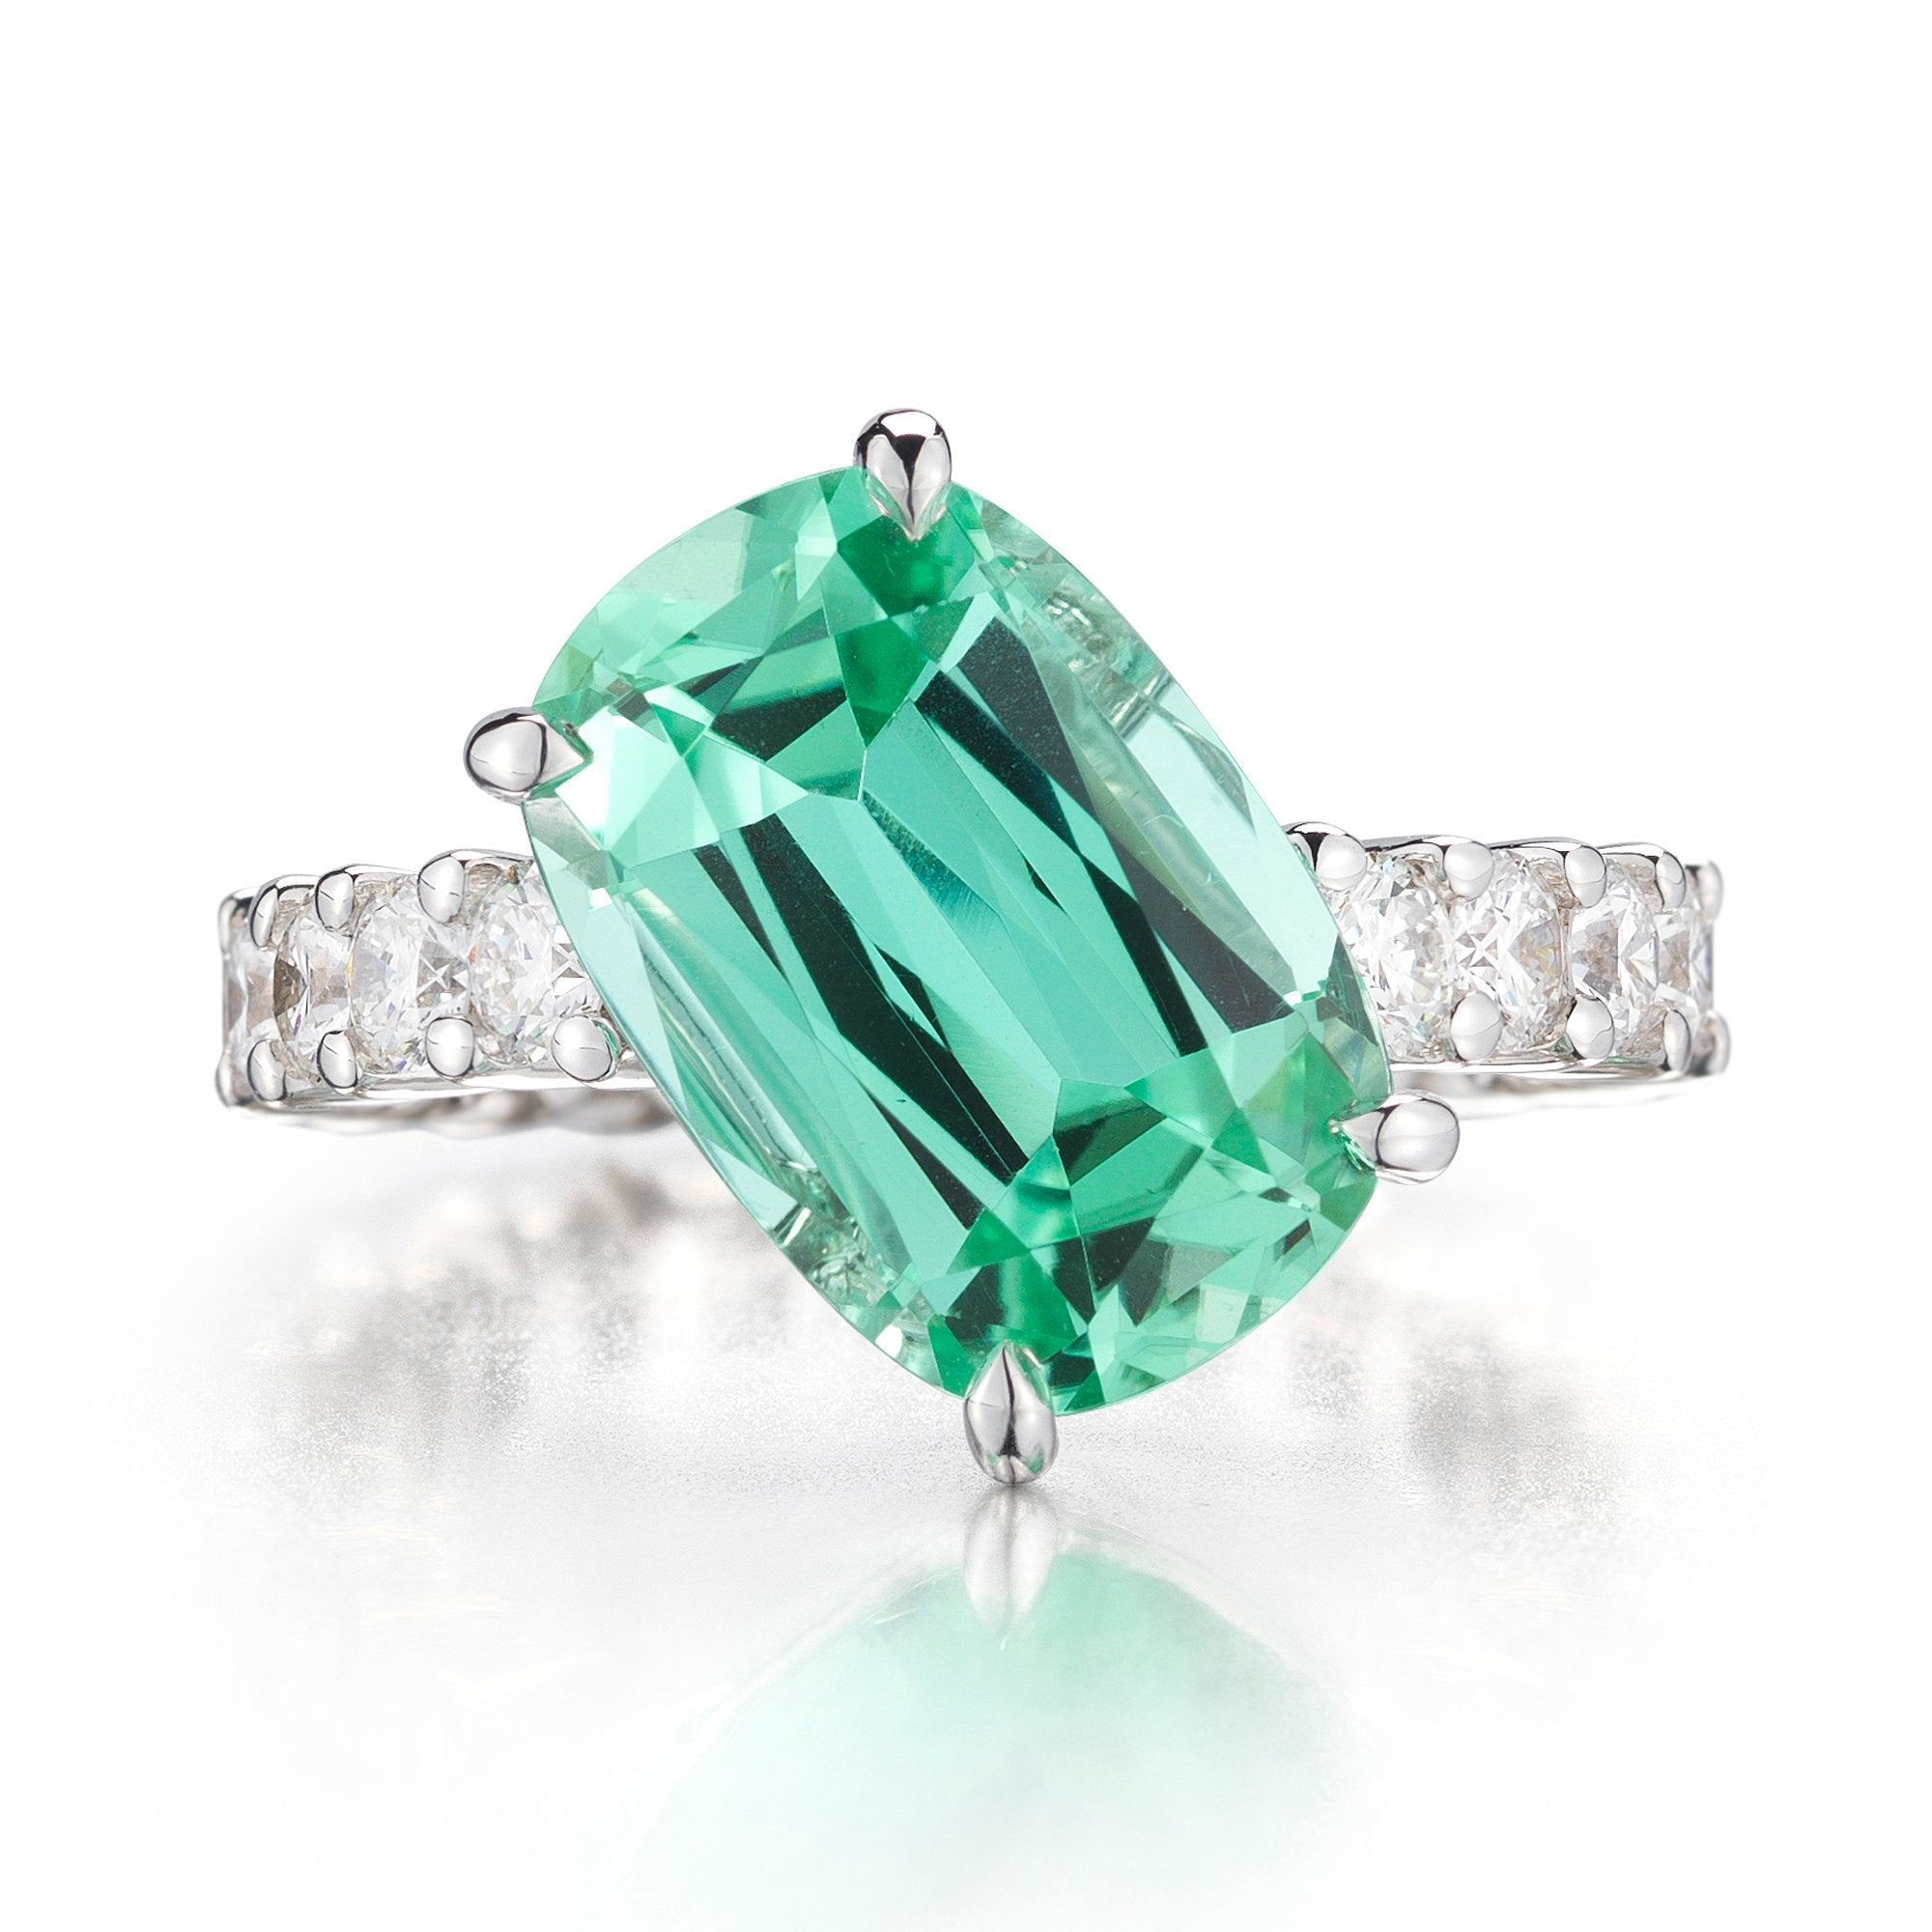 11 o'clock® Mint Tourmaline and Diamond 'Eternita' Ring - Paolo Costagli - 1